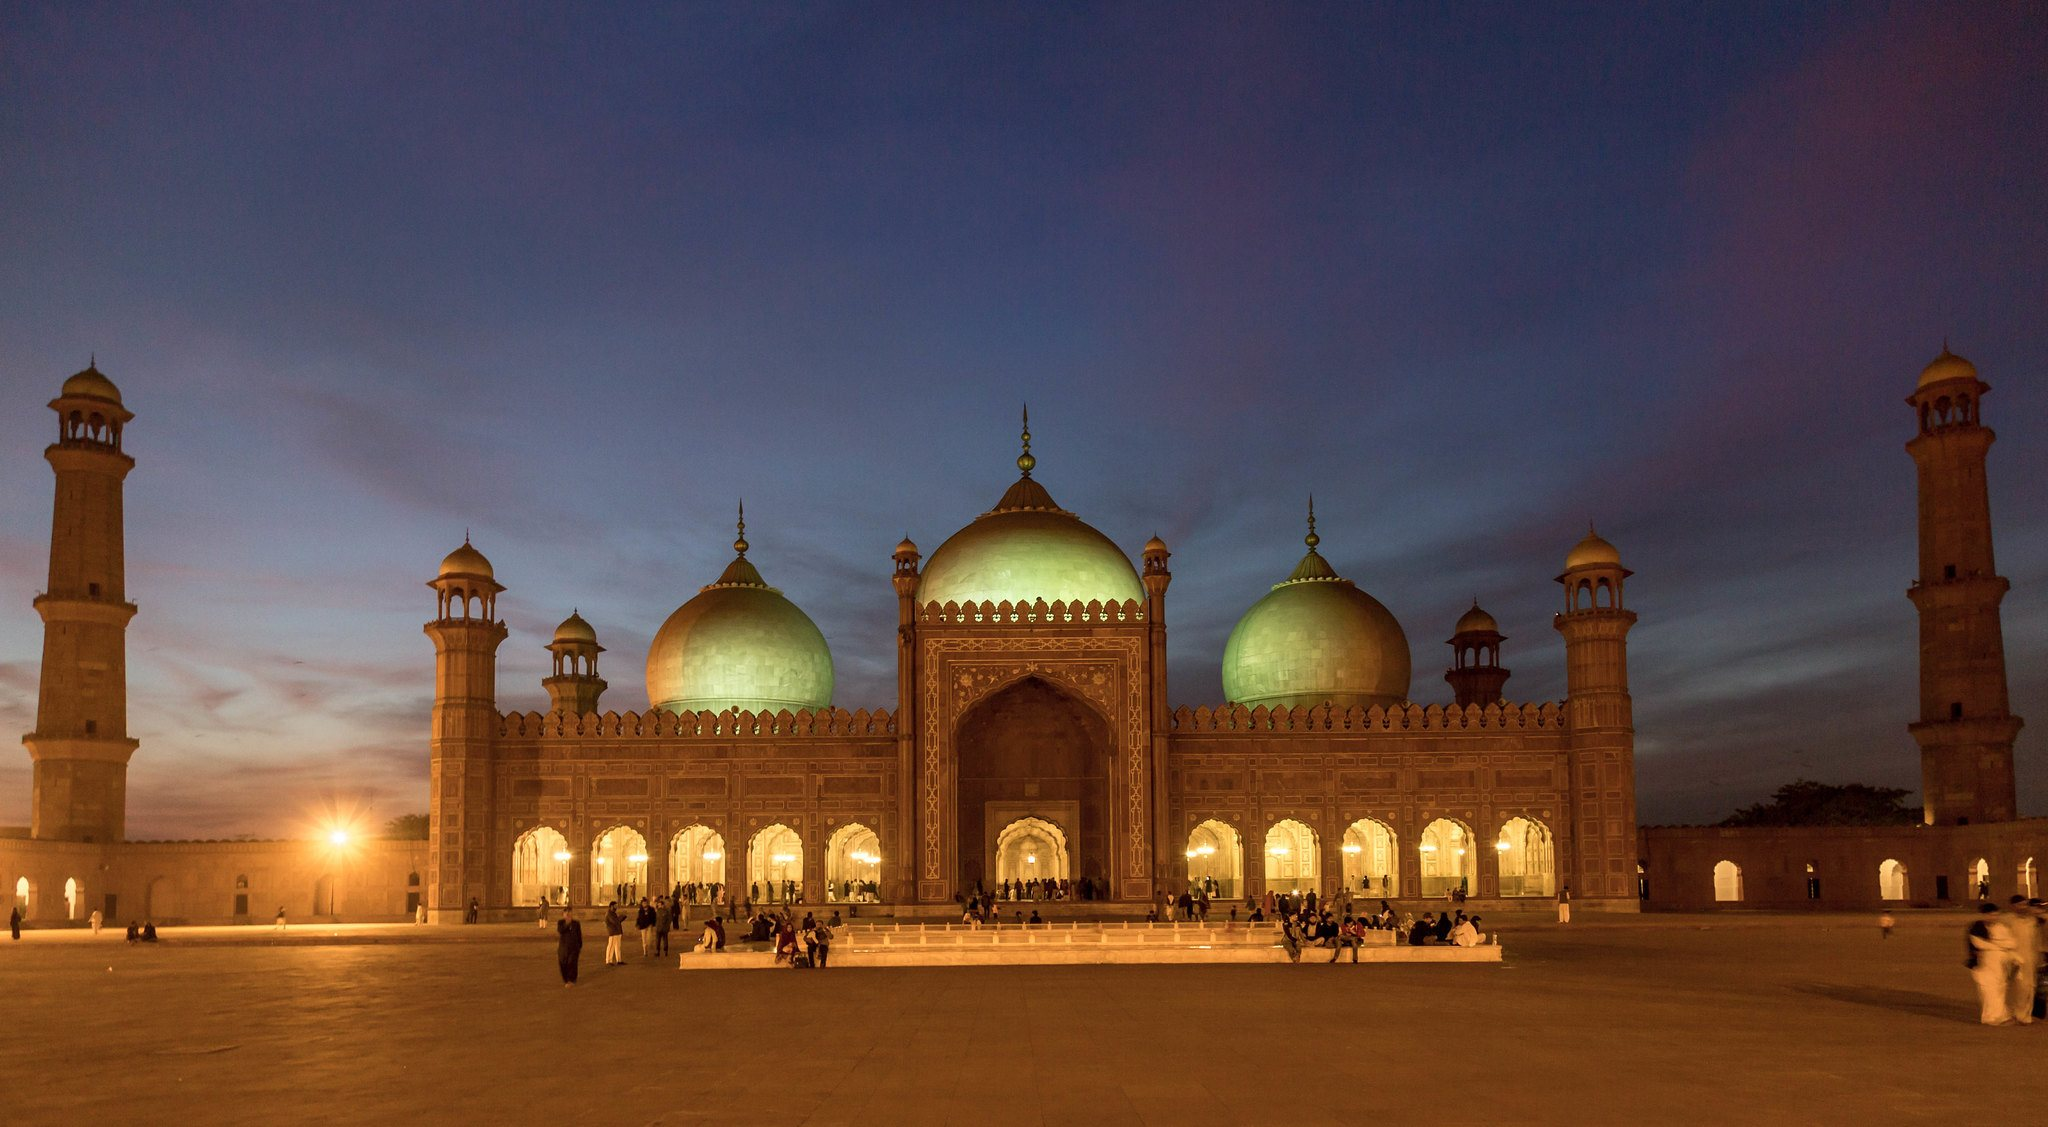 Things To Do in Pakistan - Points of Interest, Activities and Experience